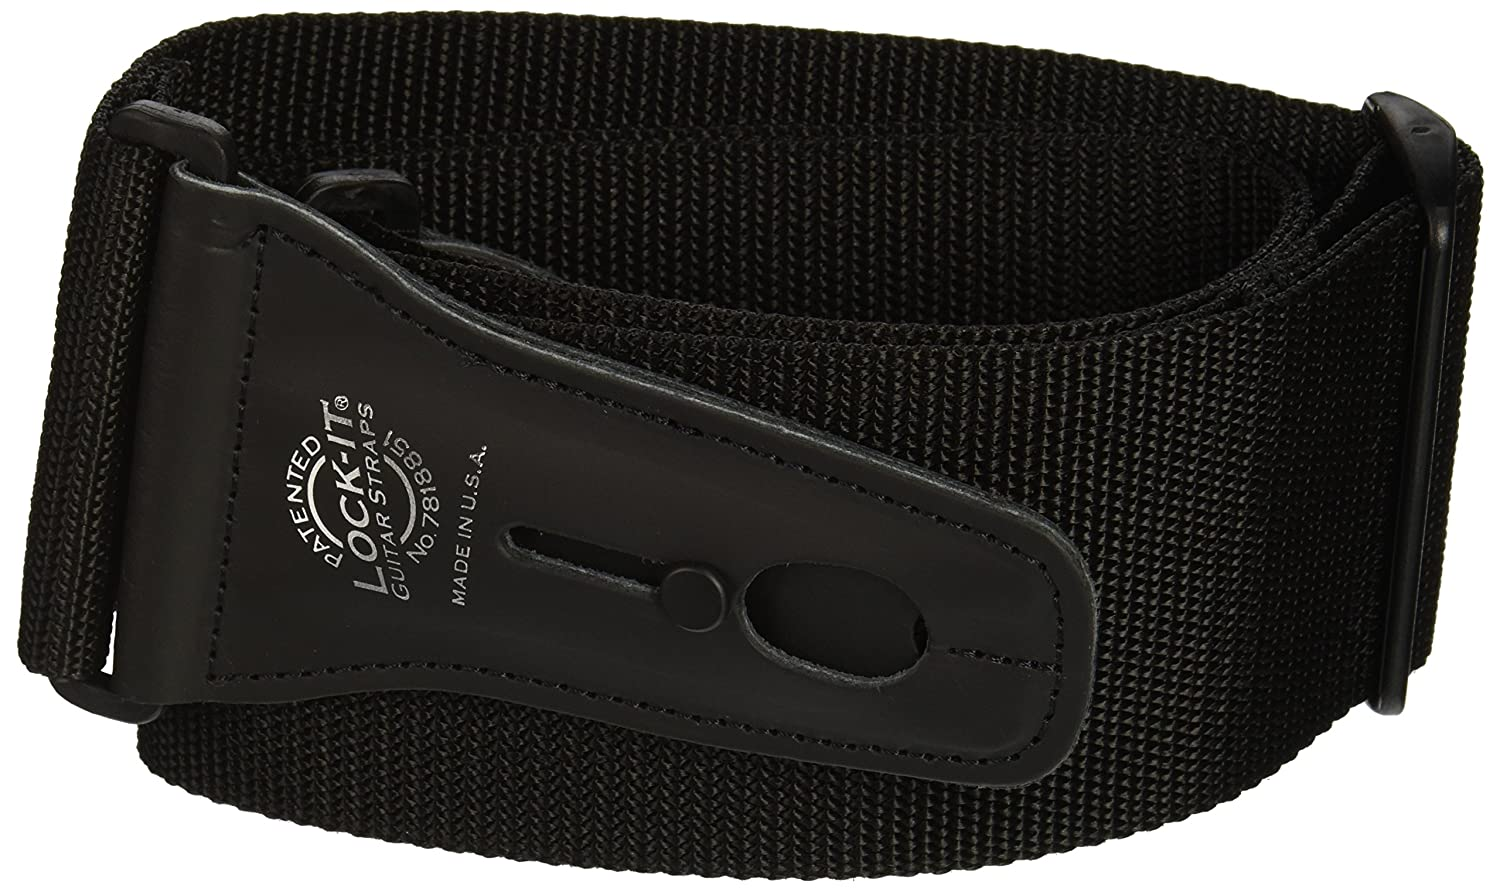 Lock-It Straps LIS 012 P3-BLK 3-Inch Guitar Strap, Black LIS012P3BLK